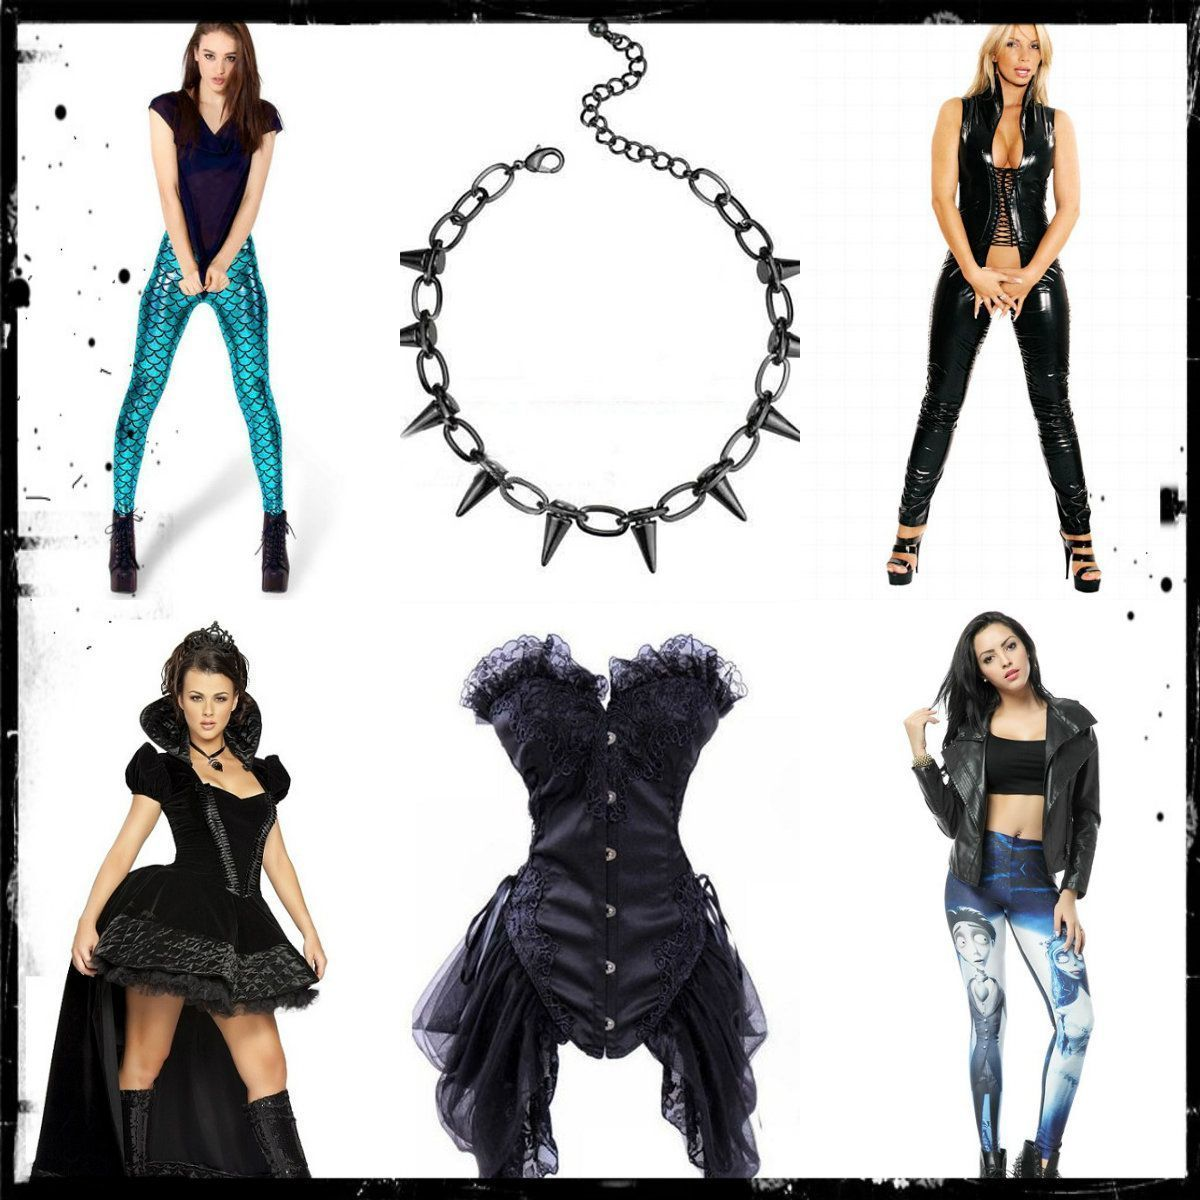 Featured Booth: Kitty's Jewelry Gothic, Punk and Steampunk Jewelry and Clothing Store